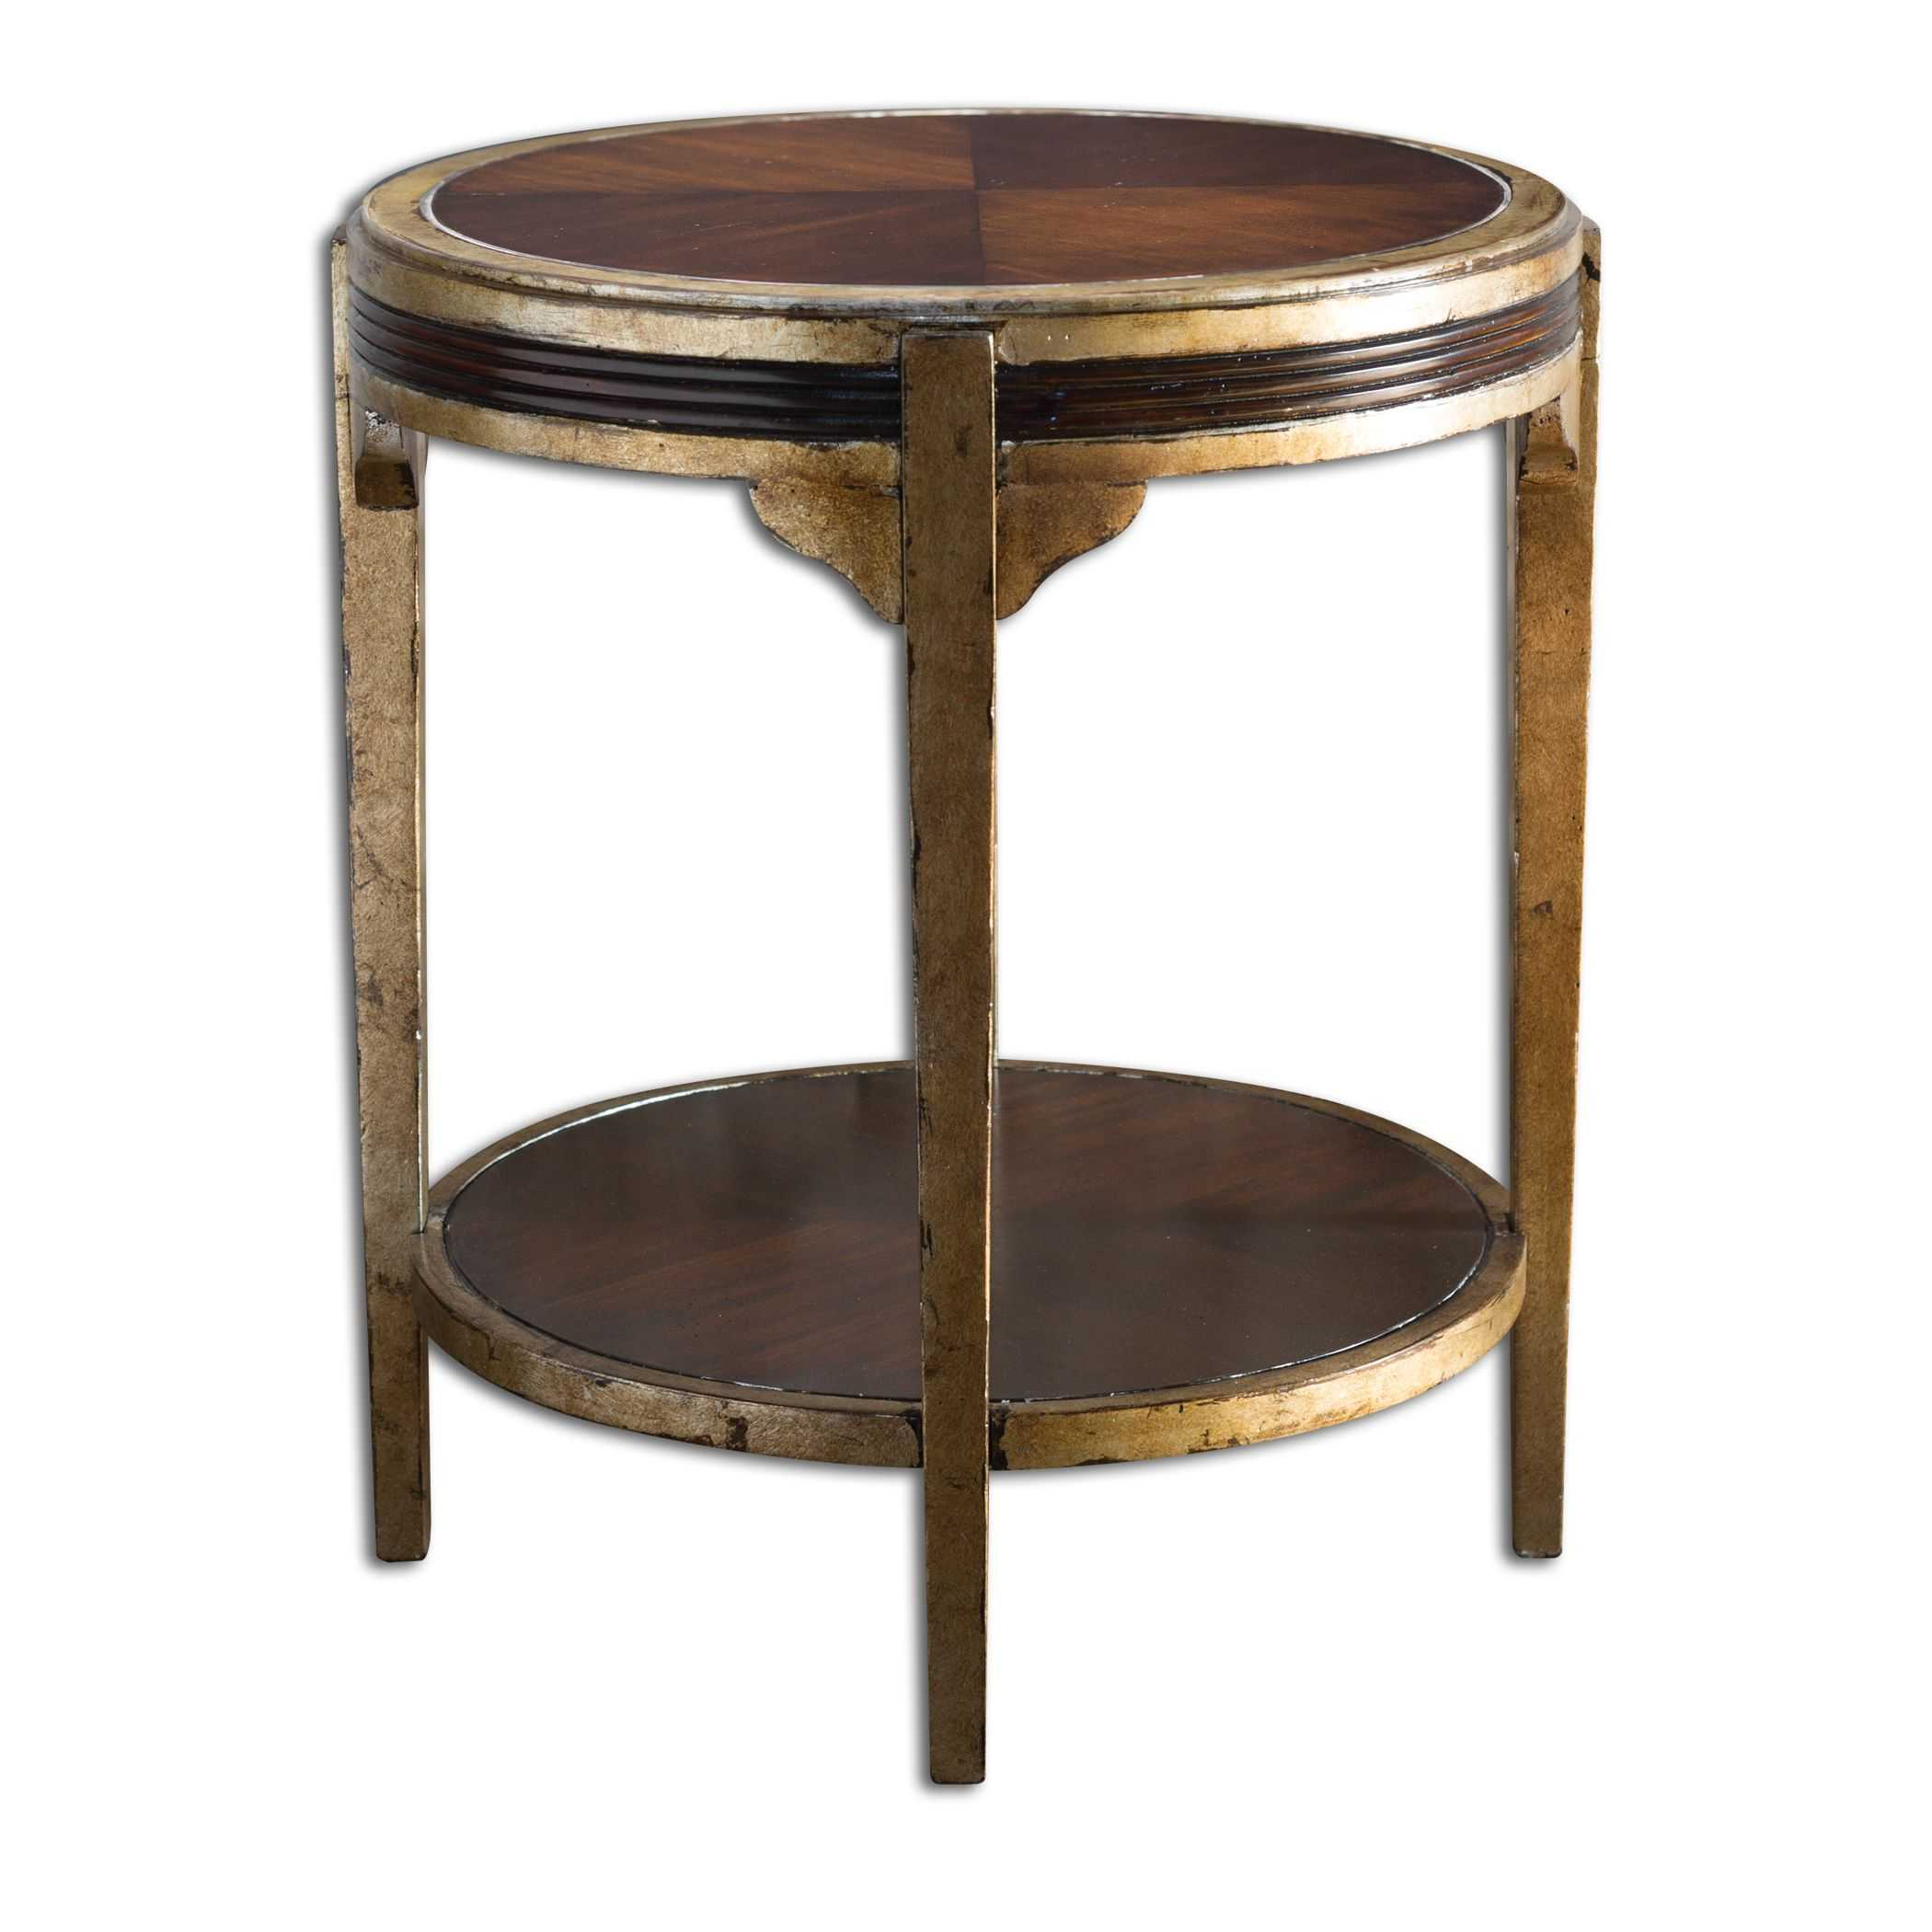 uttermost tasi accent table mid century jinan tables indoor outdoor furniture narrow coffee console chest wine holder colorful ikea storage round patio with umbrella hole antique